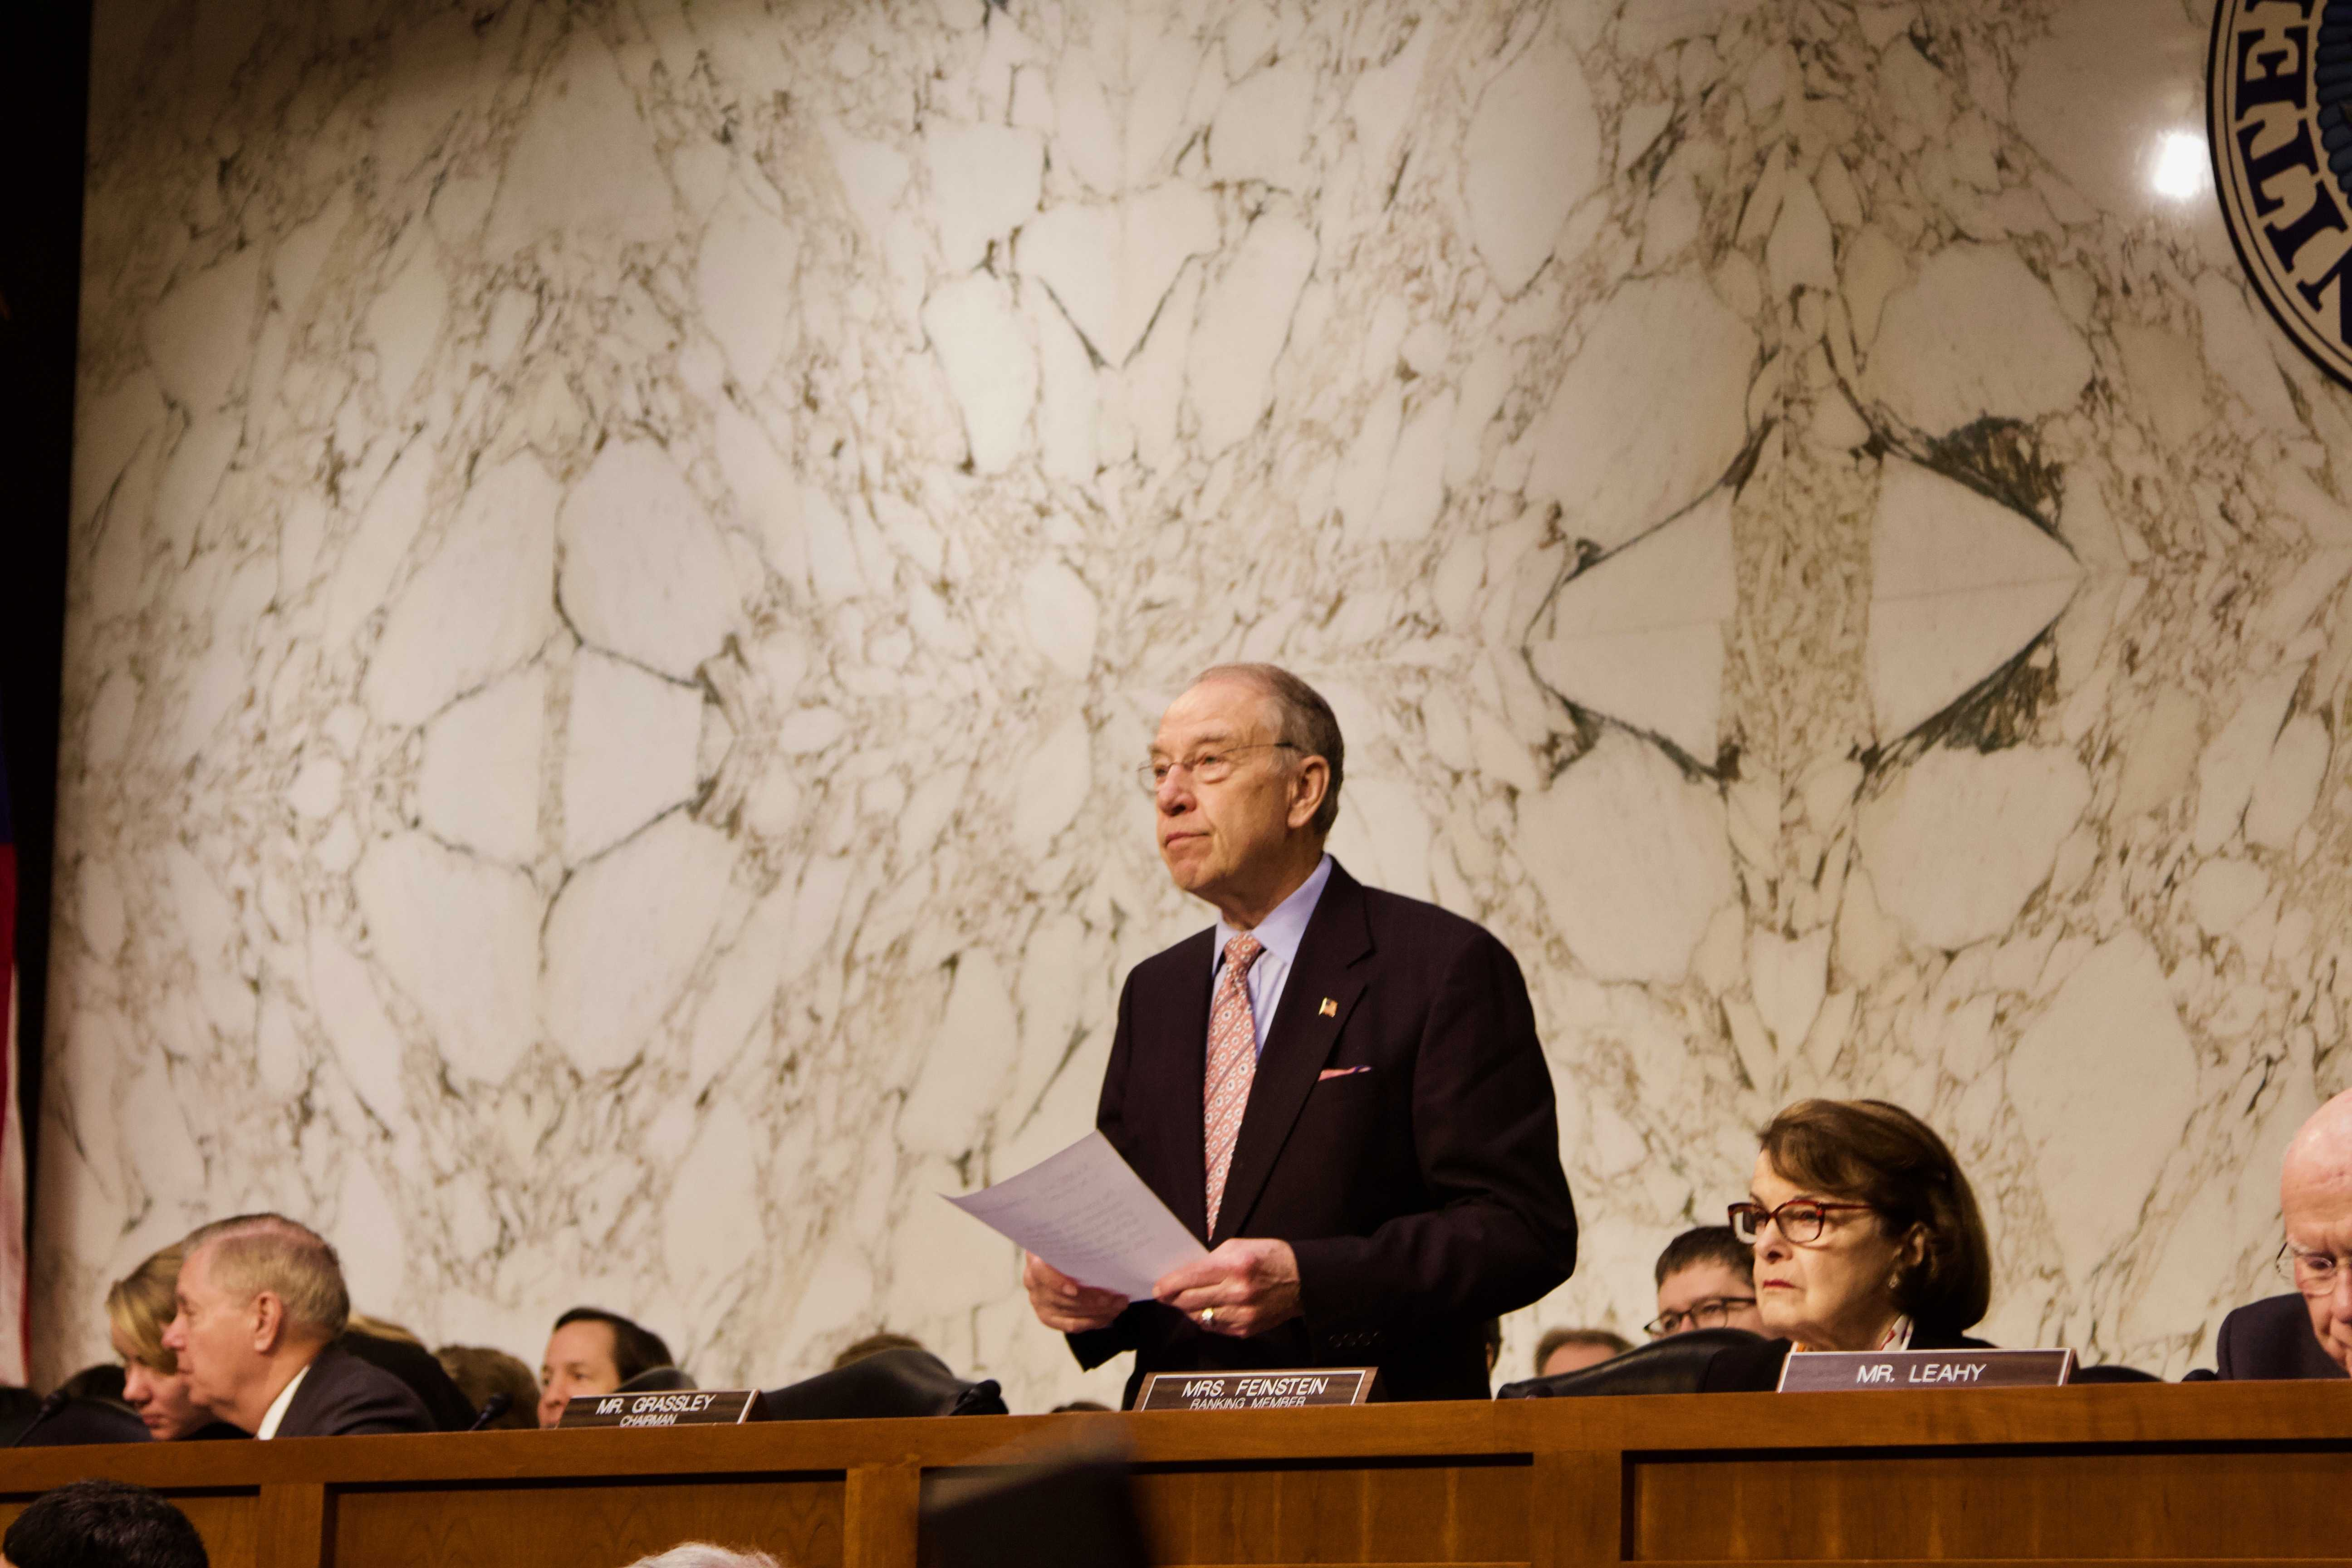 Senate Judiciary Committee Chairman Chuck Grassley stands at a hearing March 14 addressing oversight in the Parkland, Florida, school shootings, in which 17 people died. (Katelyn Weisbrod/The Daily Iowan)